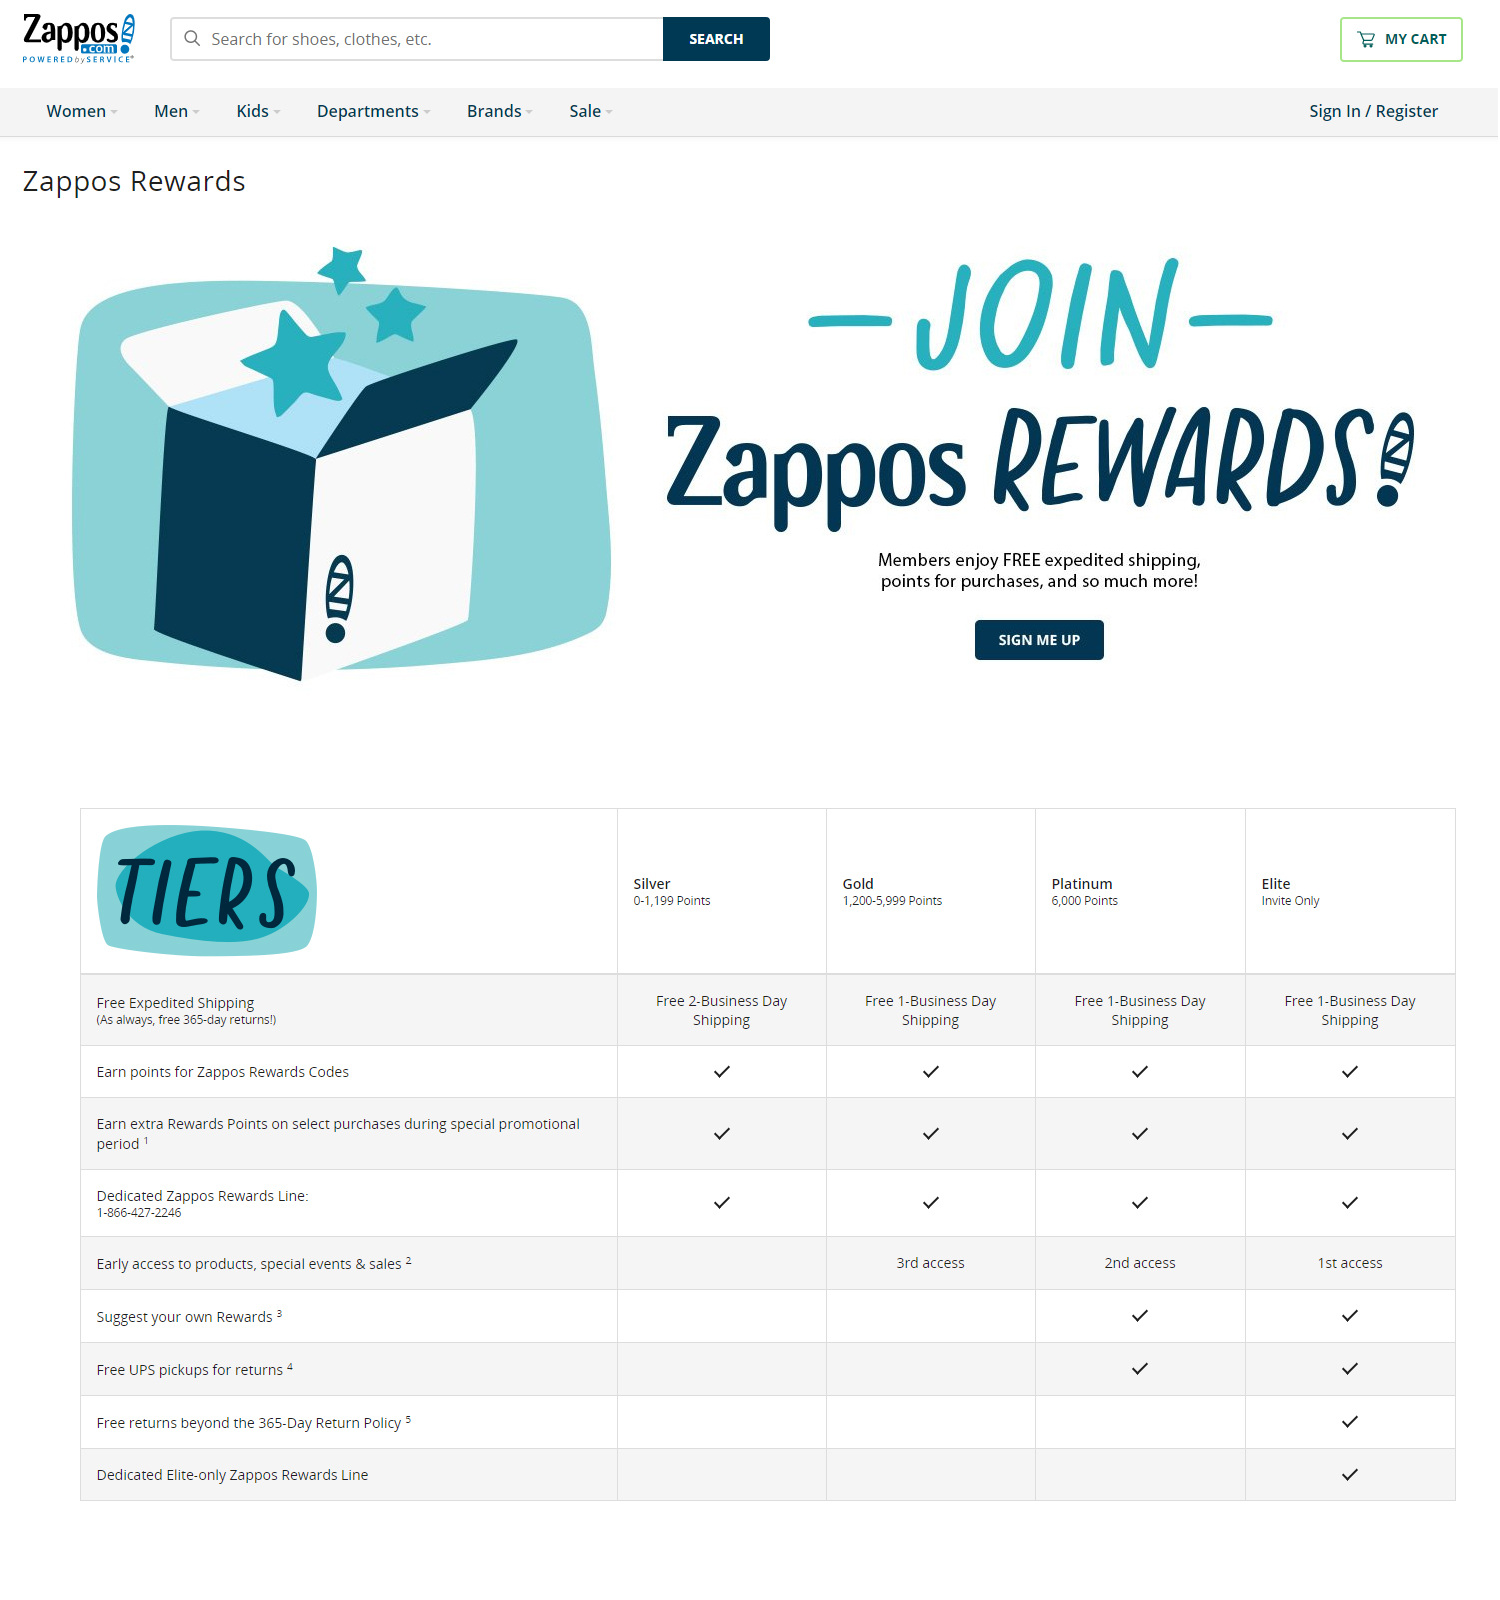 Zappos has four tiers in total, and with each level, the quality of rewards gradually increase and new perks are unlocked.